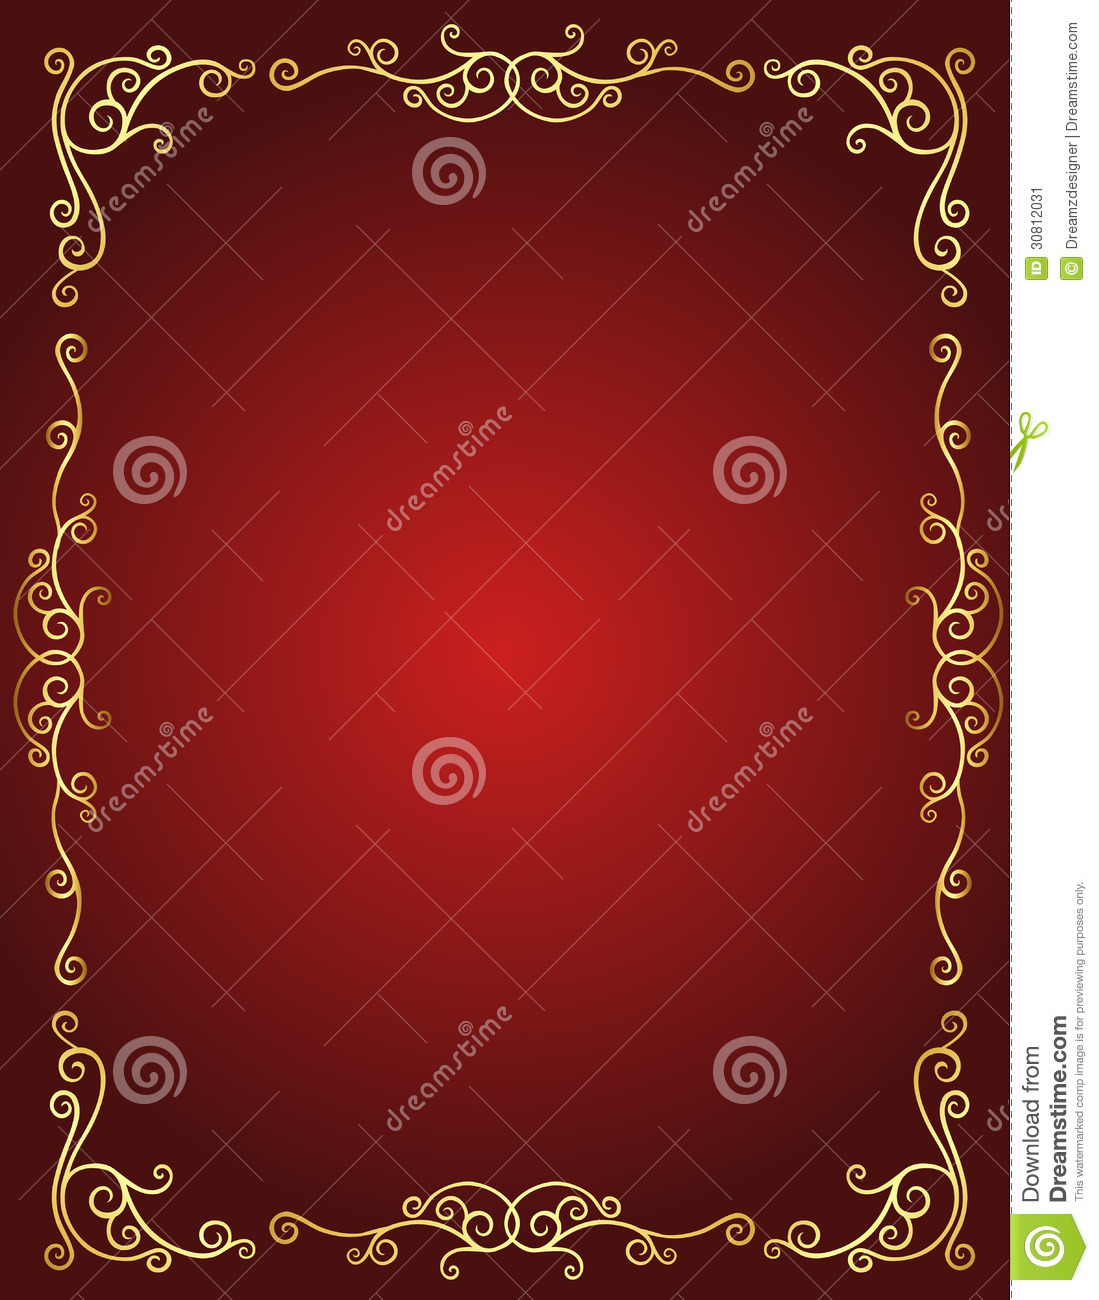 Wedding Invitation Border In Red And Gold Stock Vector